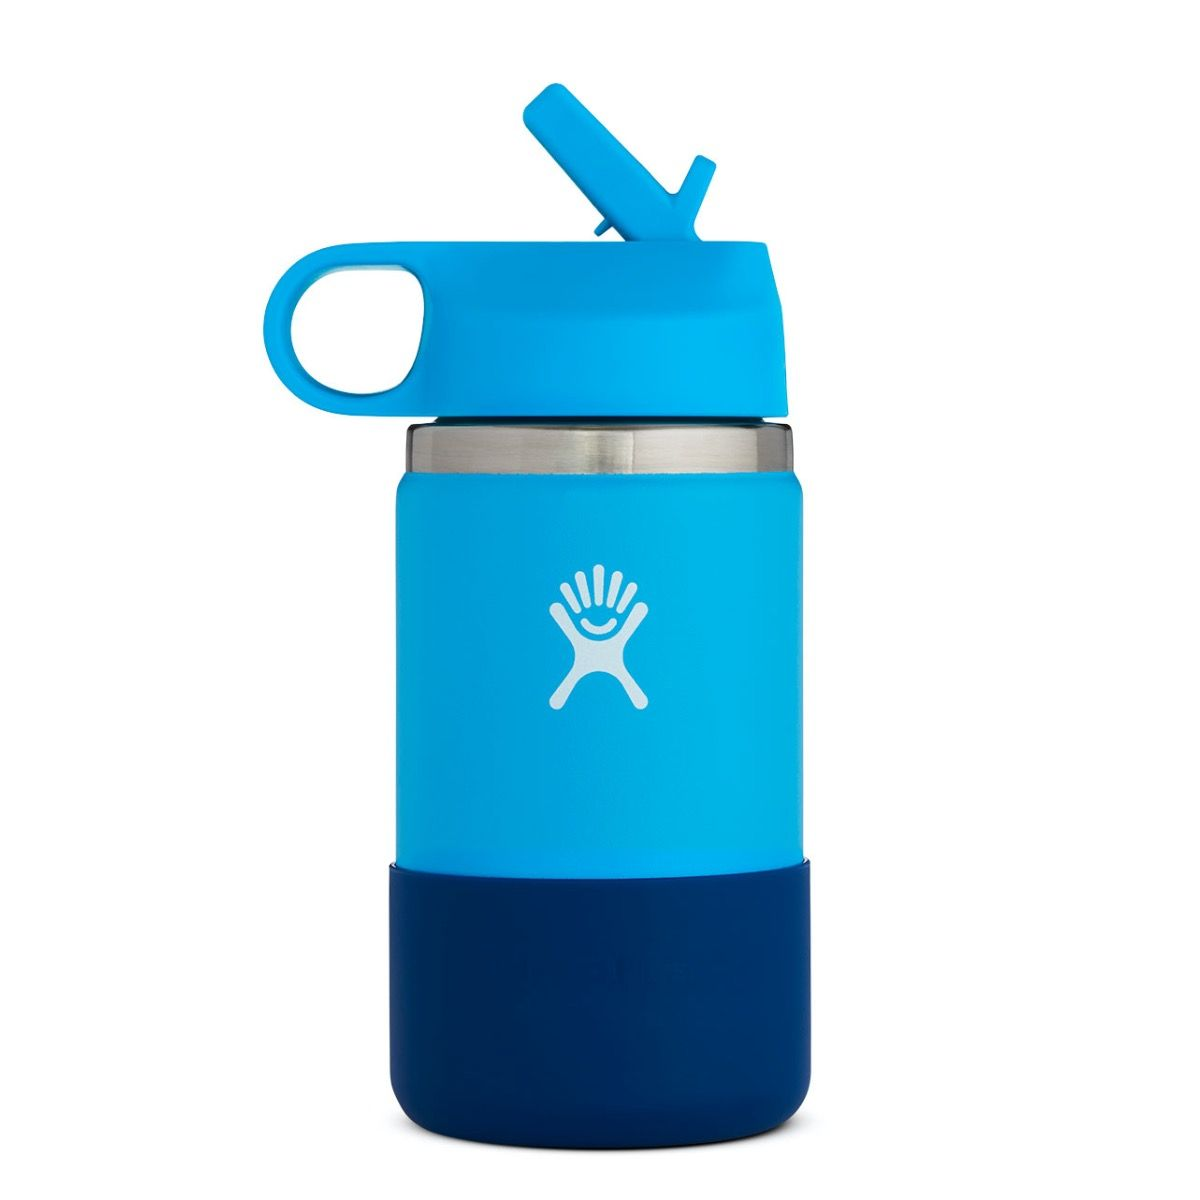 hydroflask 12oz wide mouth kid's bottle in pacific